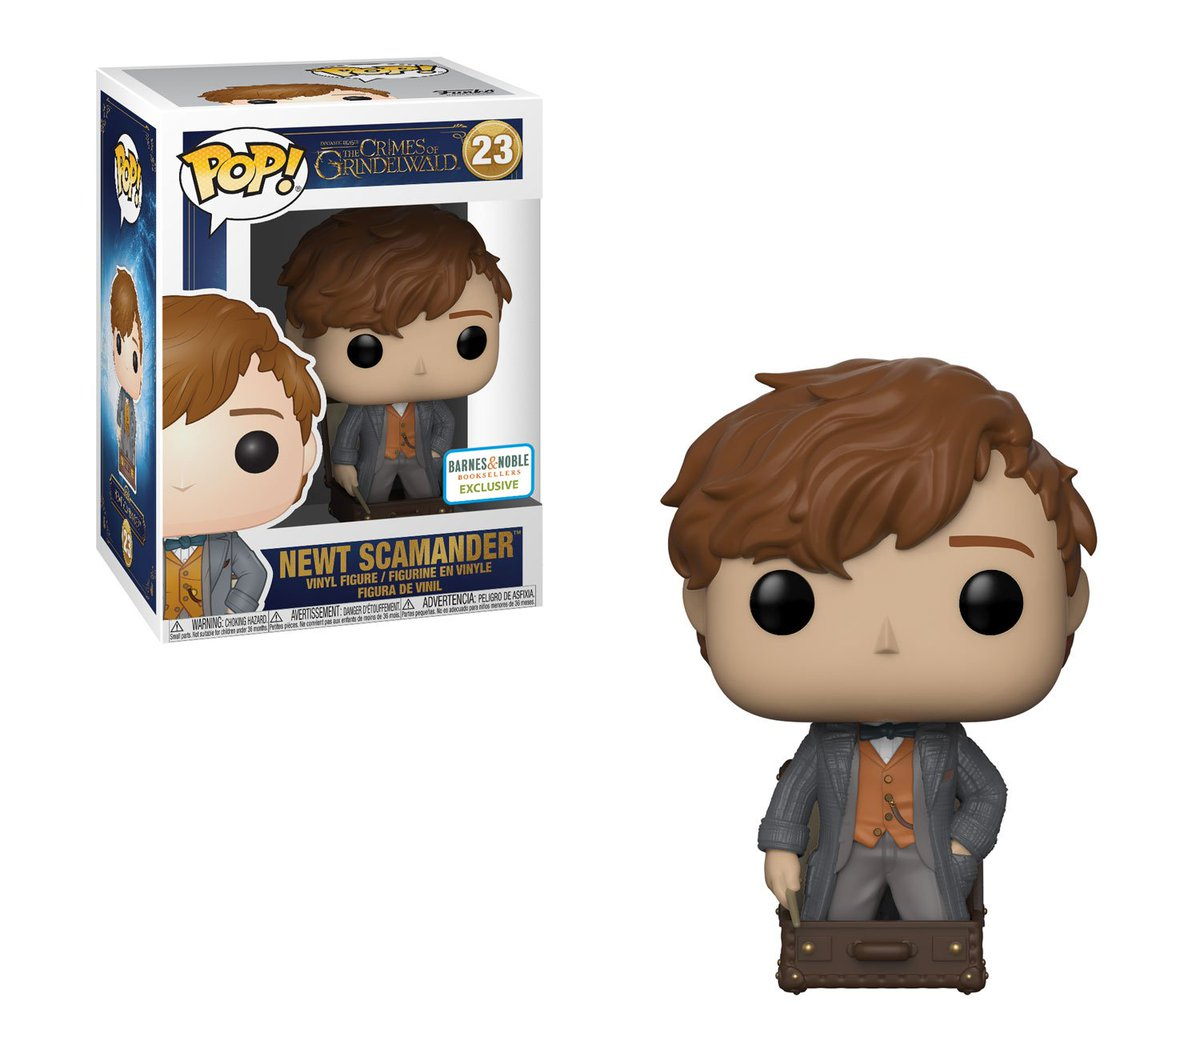 RT & follow @OriginalFunko for a chance to WIN a @BNBuzz exclusive Newt Scamander Pop!